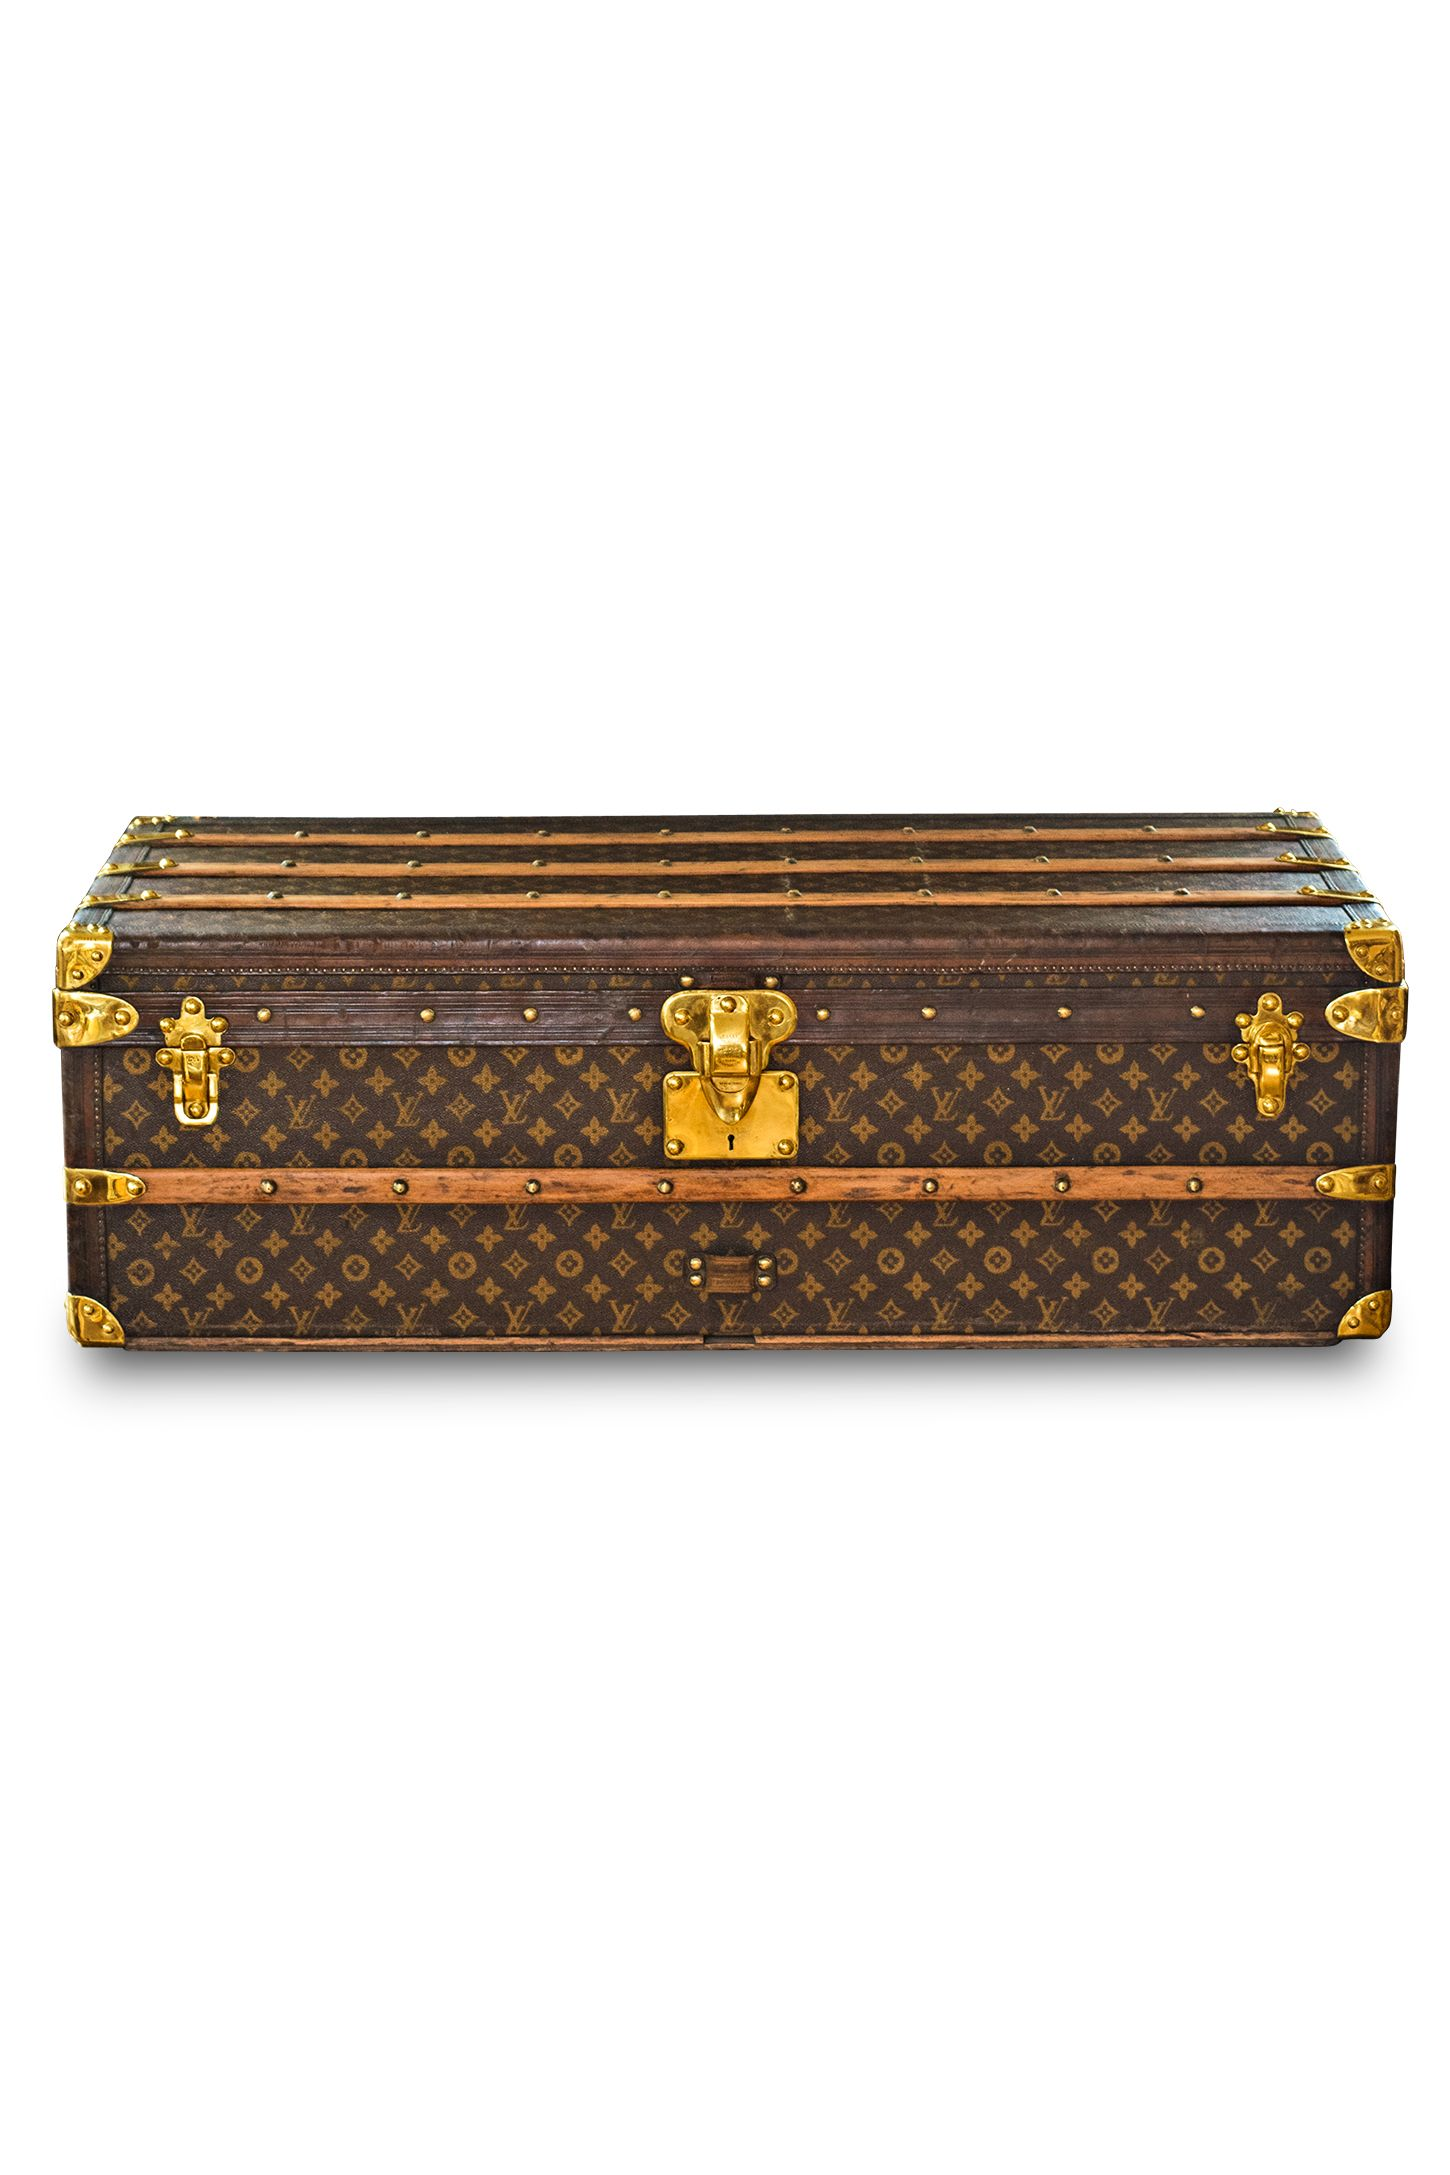 antique appraisals trunk